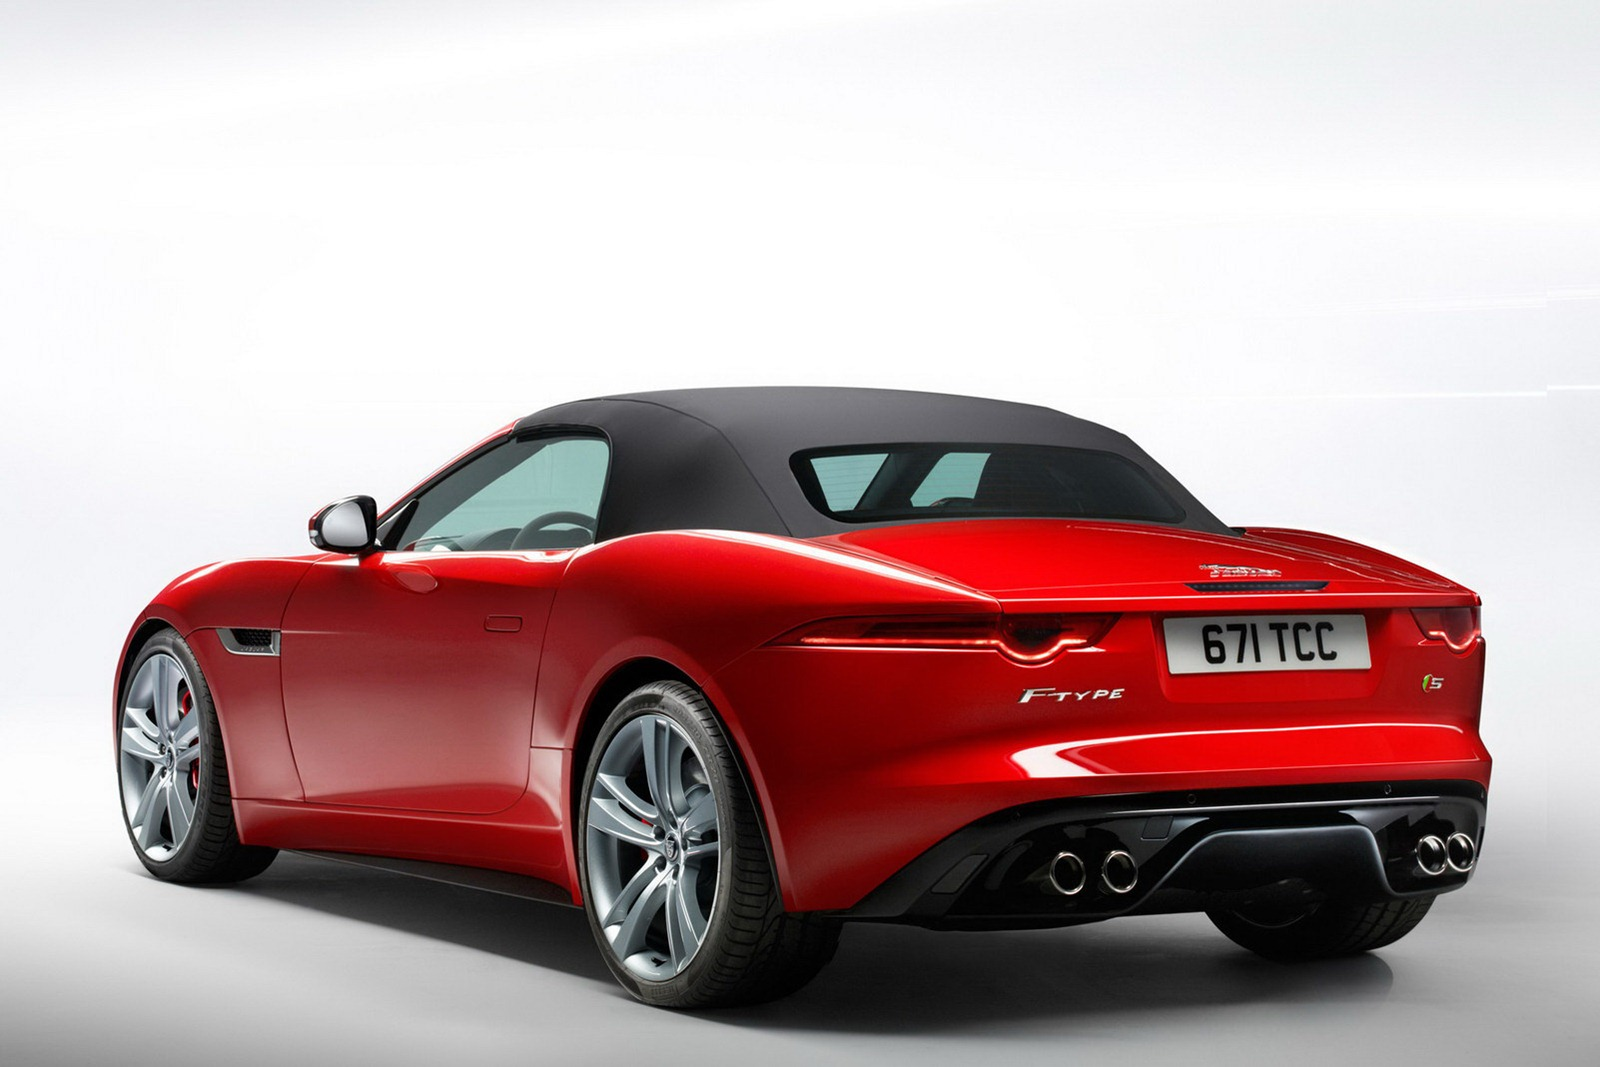 2013-Jaguar-F-Type-25.jpg